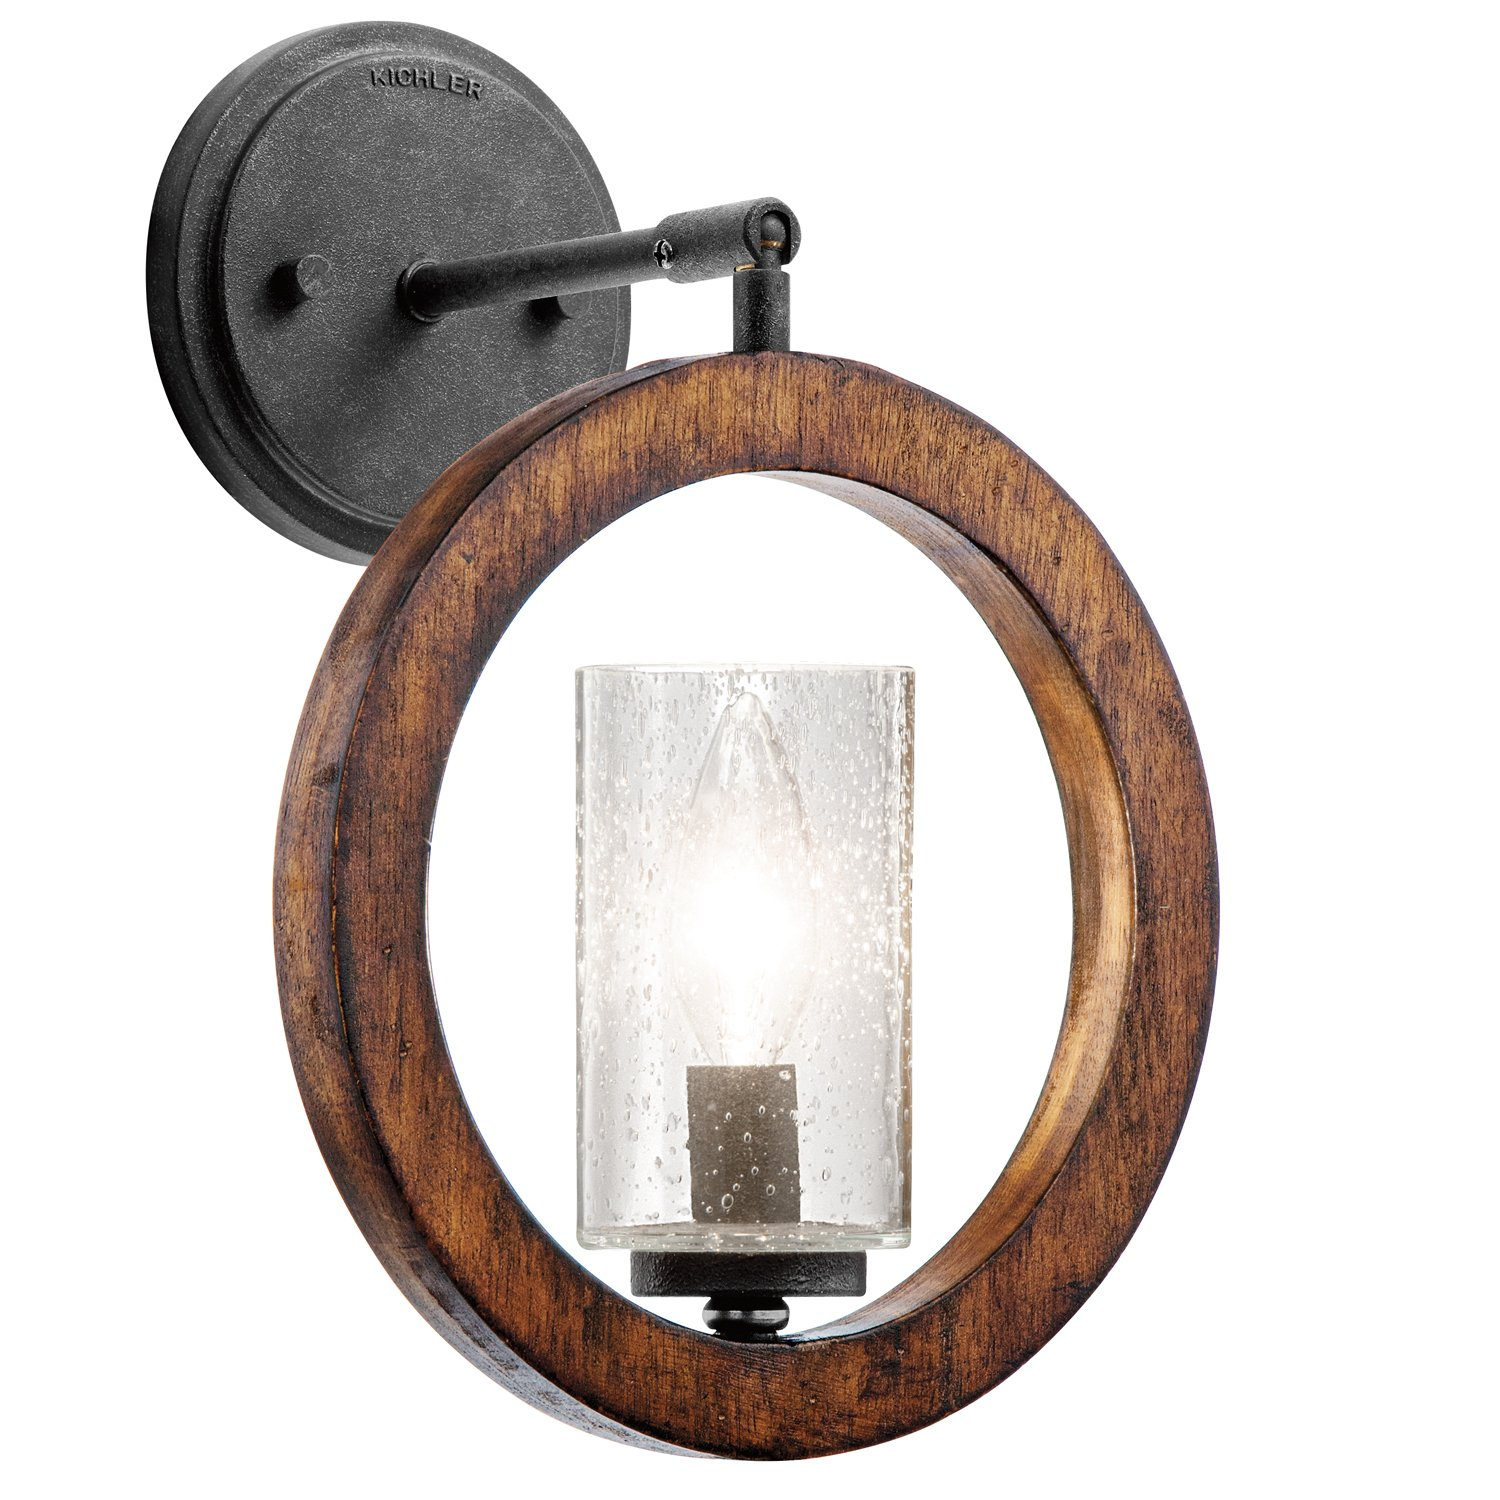 Kichler 43189aub grand bank mini pendantwall 1 light auburn kichler 43189aub grand bank mini pendantwall 1 light auburn stained finish ceiling pendant fixtures amazon aloadofball Image collections